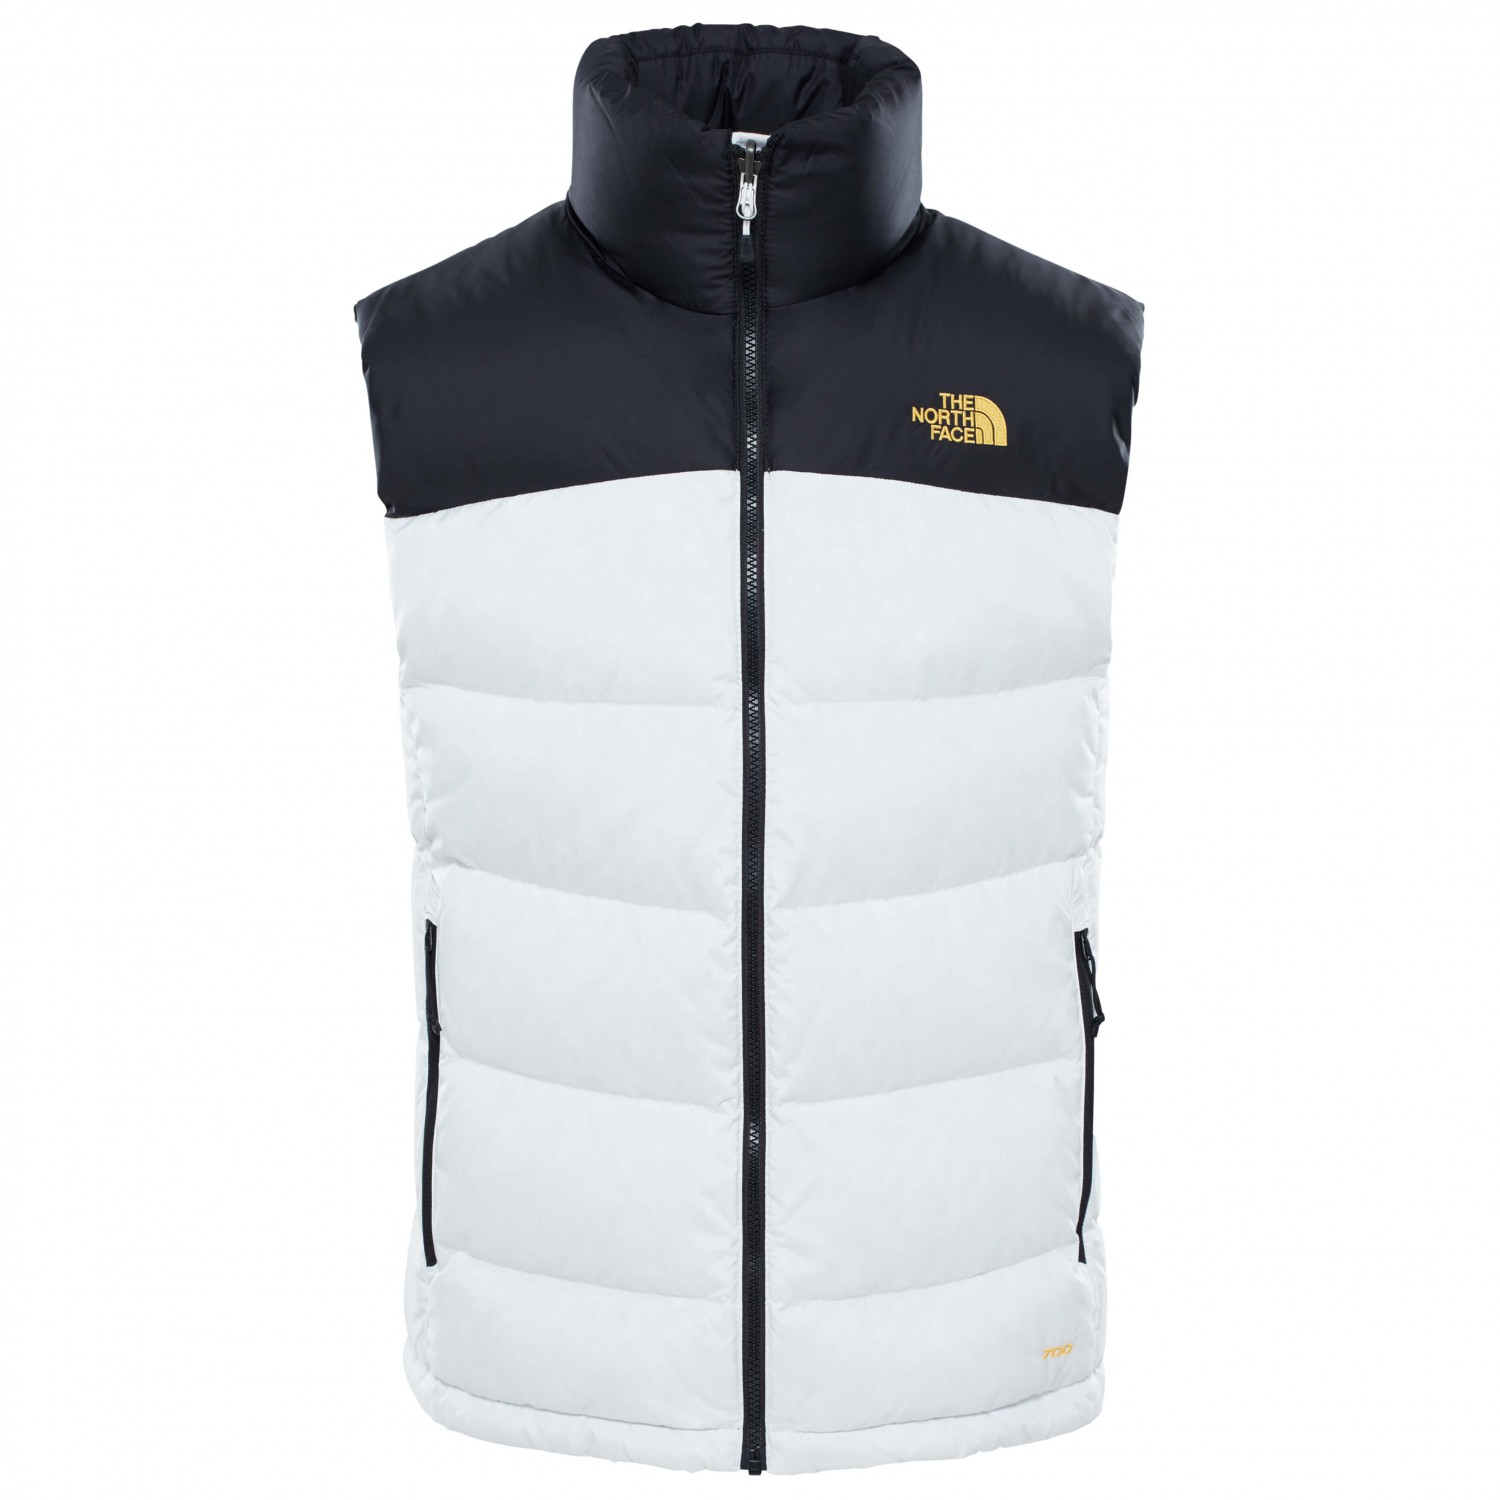 the north face nuptse 2 vest down vest men 39 s free uk delivery. Black Bedroom Furniture Sets. Home Design Ideas